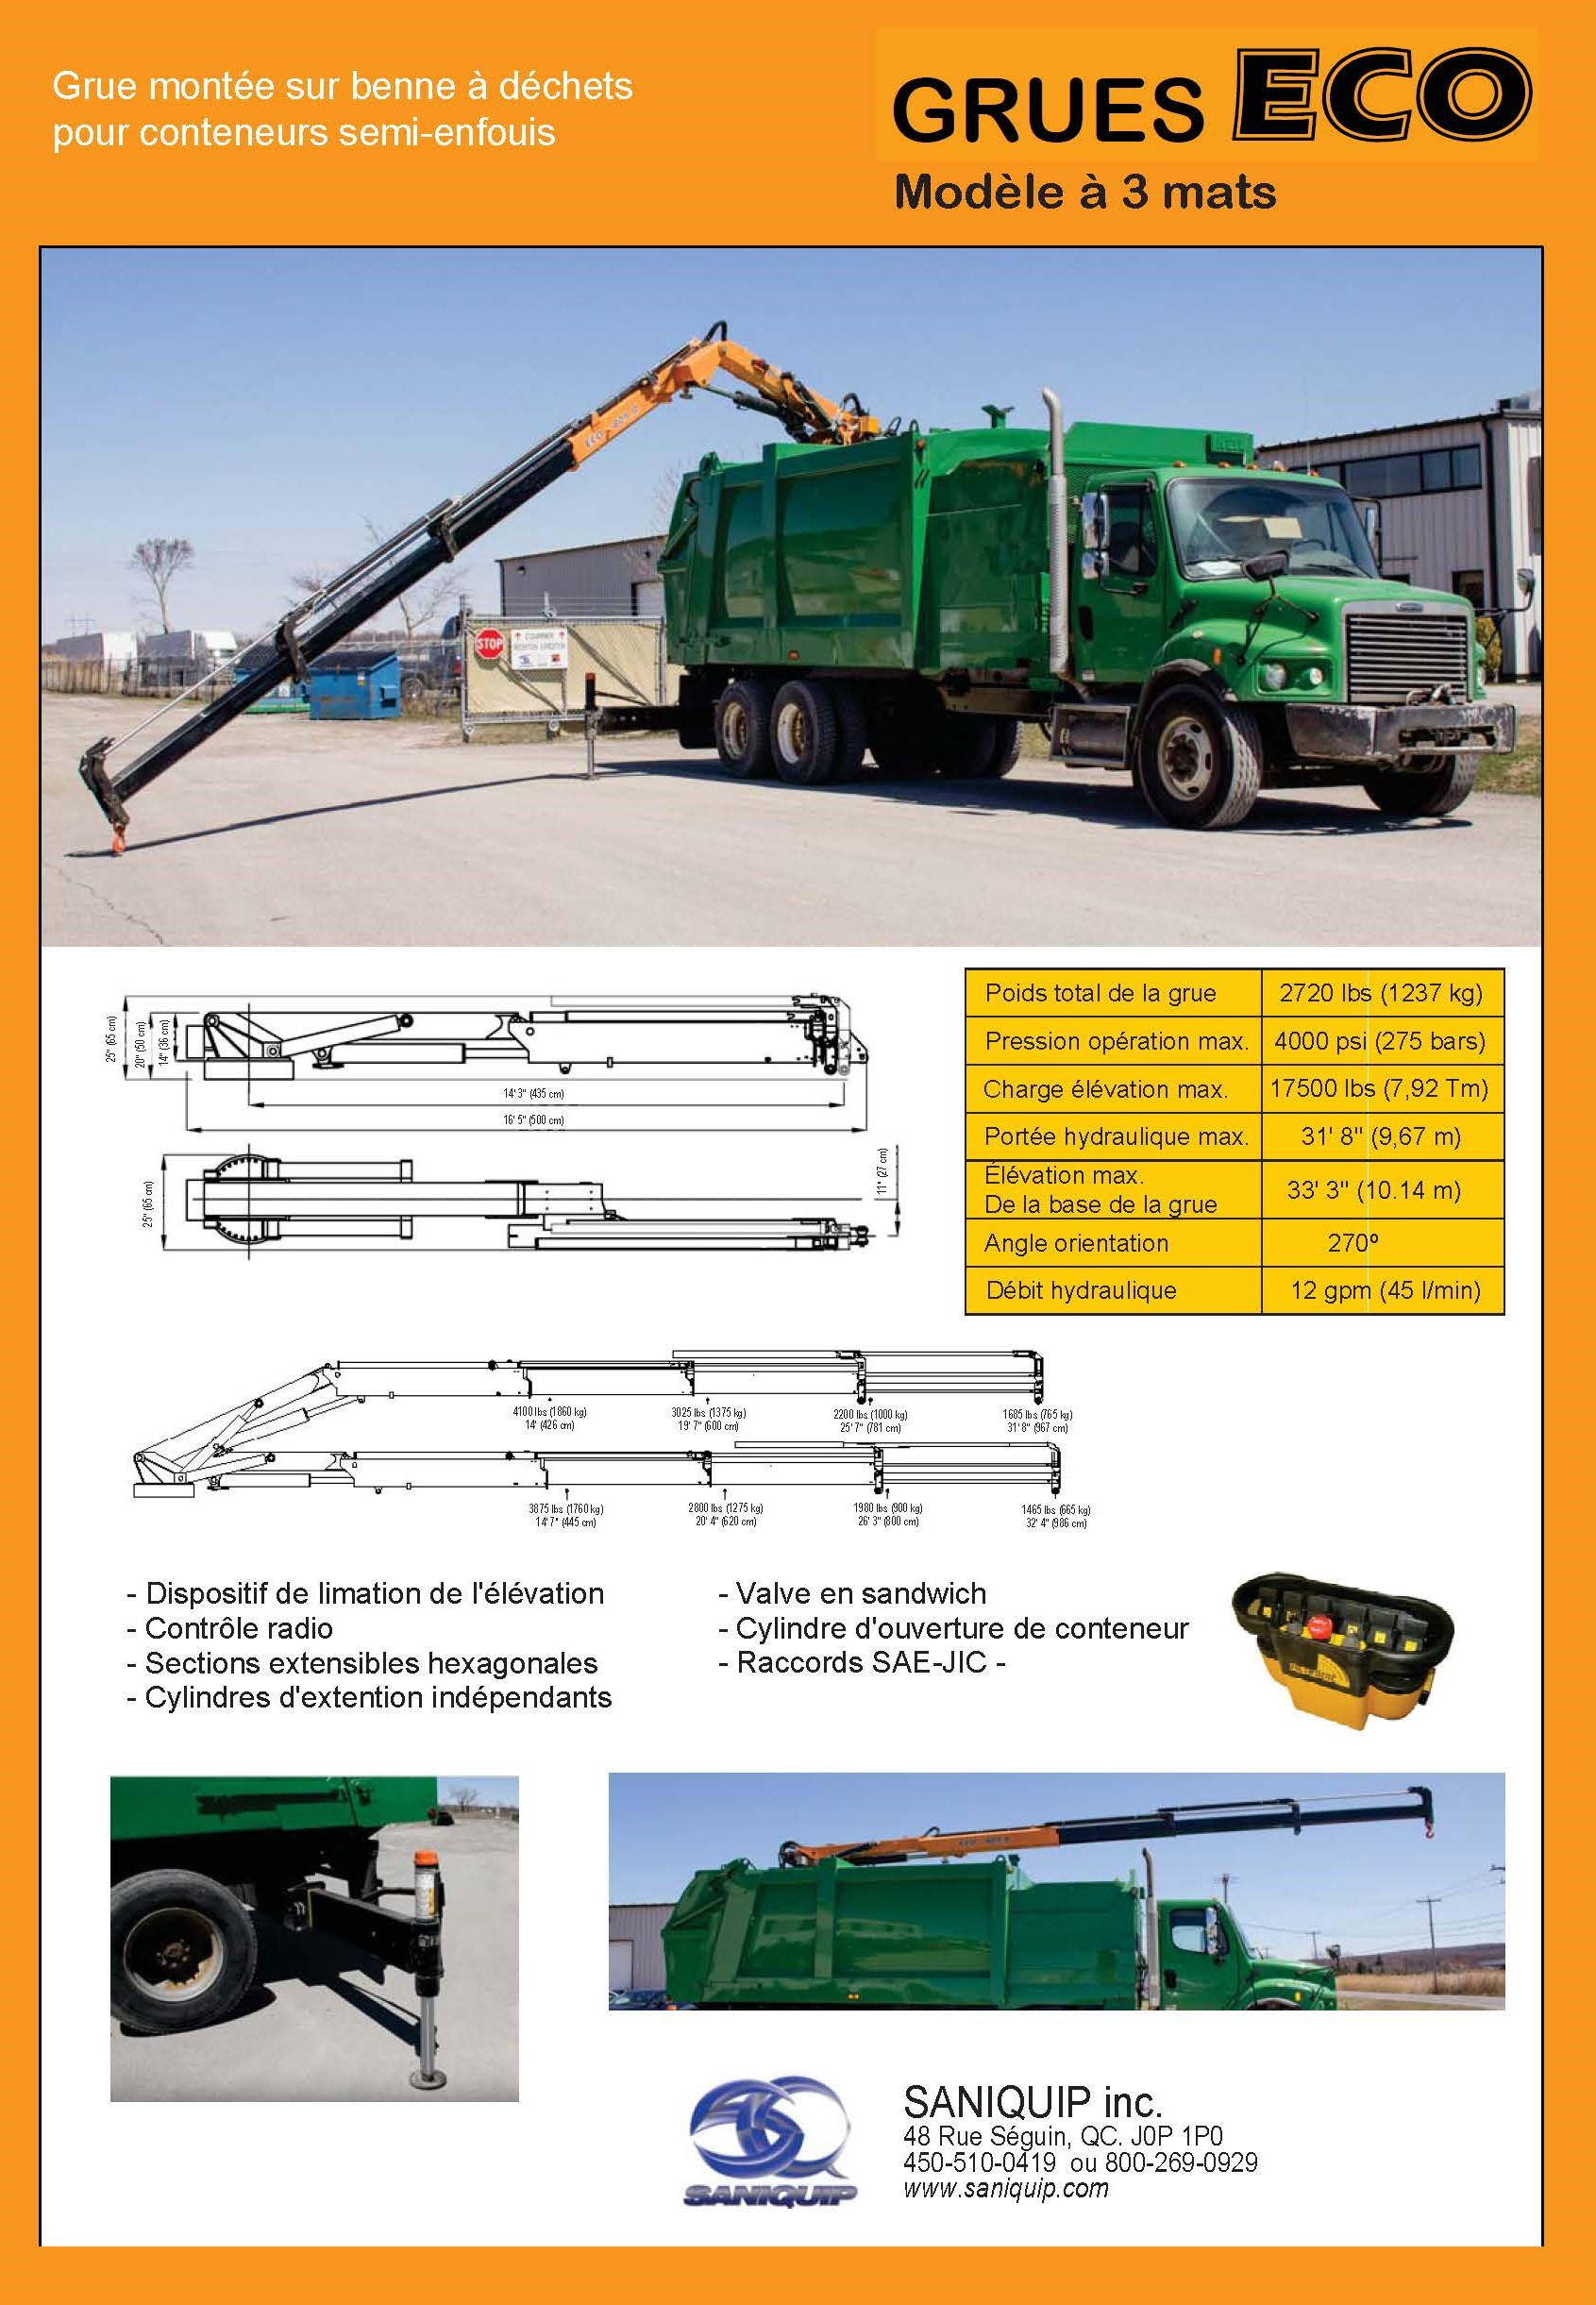 Image Brochure ECO 9R3 jan 2017 web